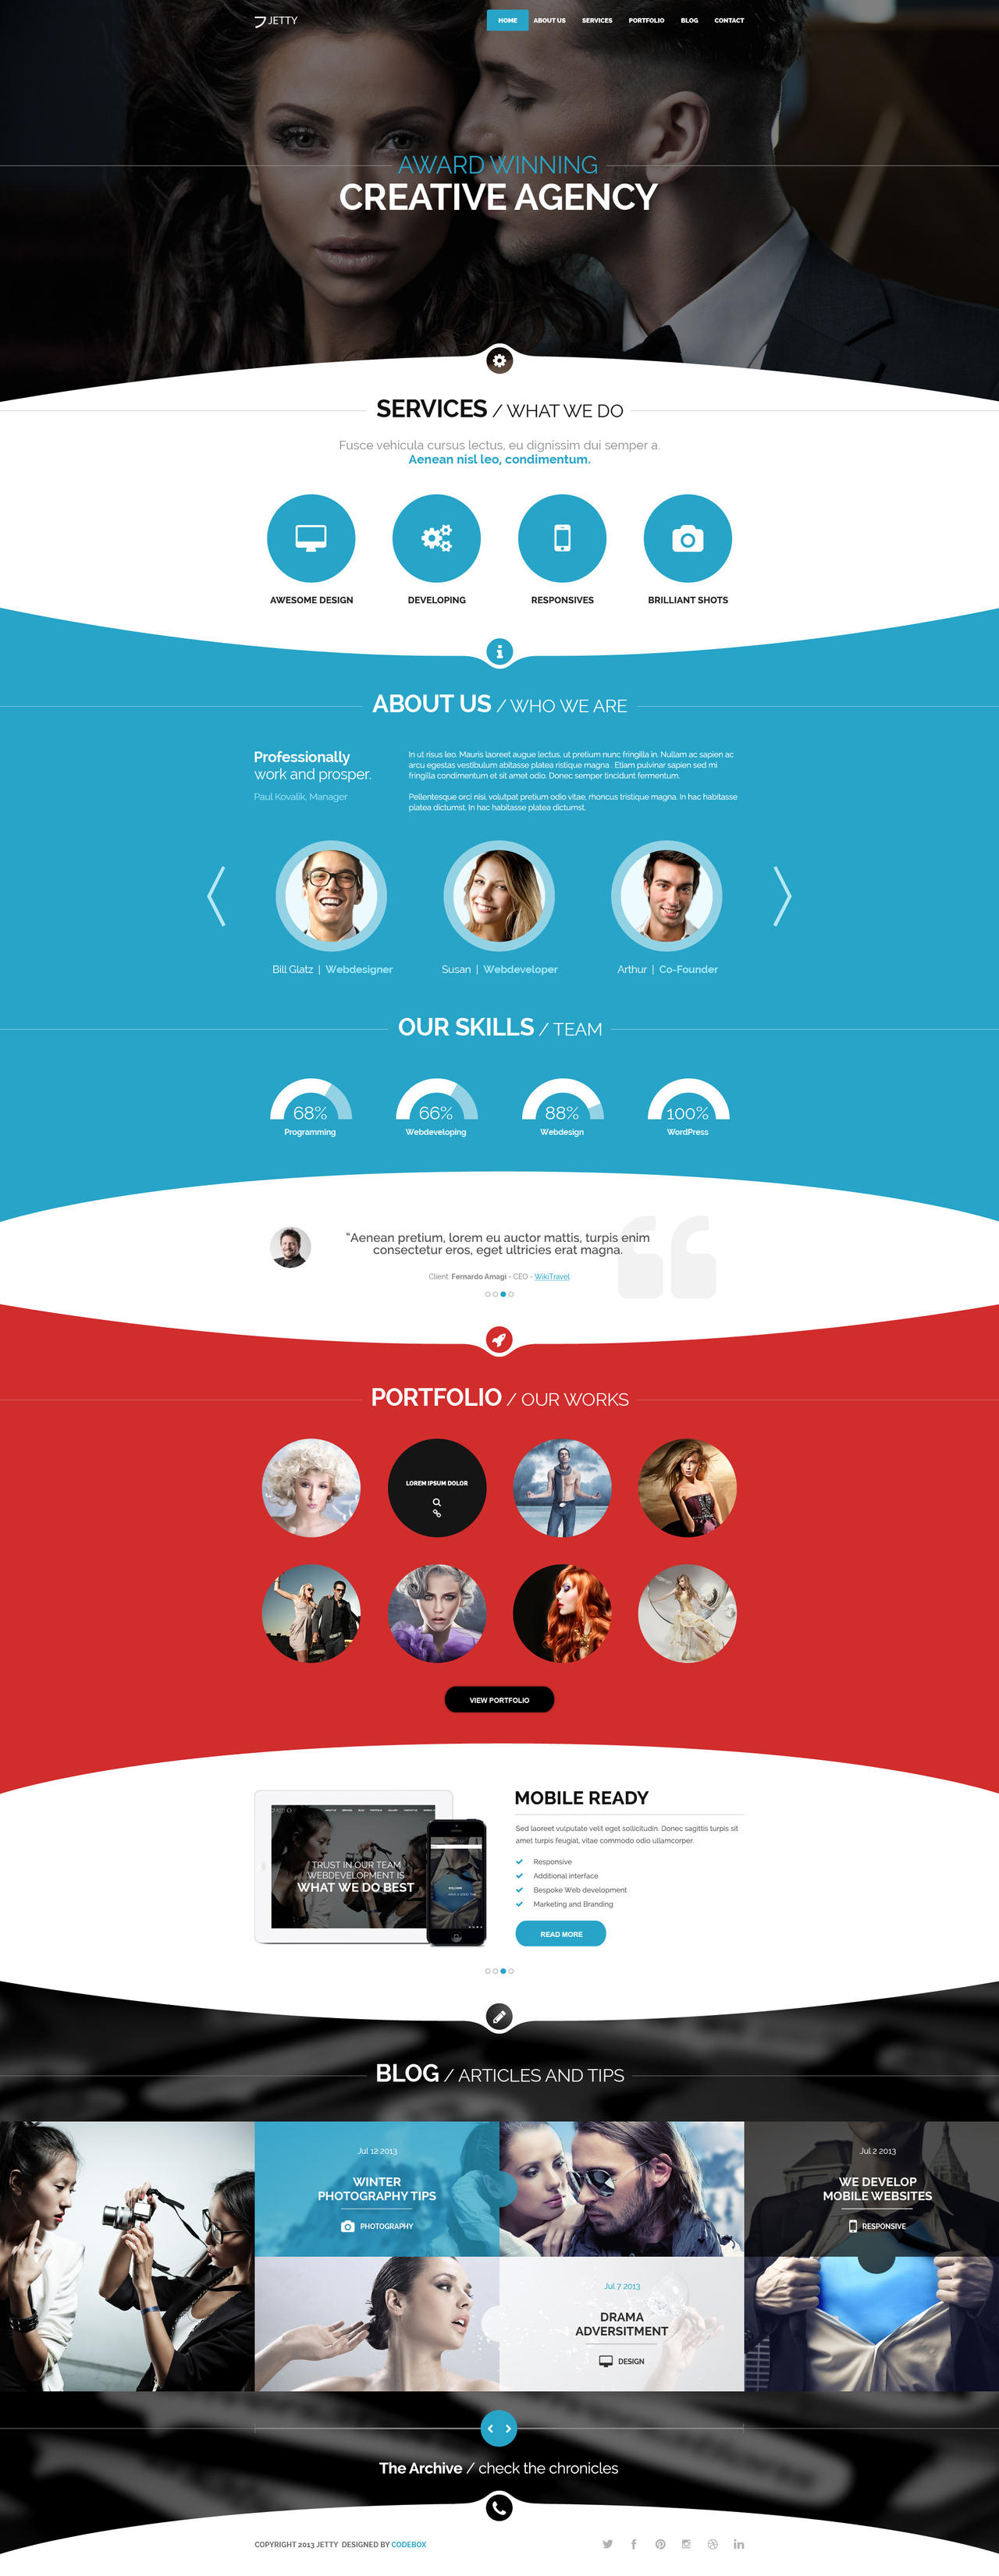 Jetty PSD Template by webdesigngeek